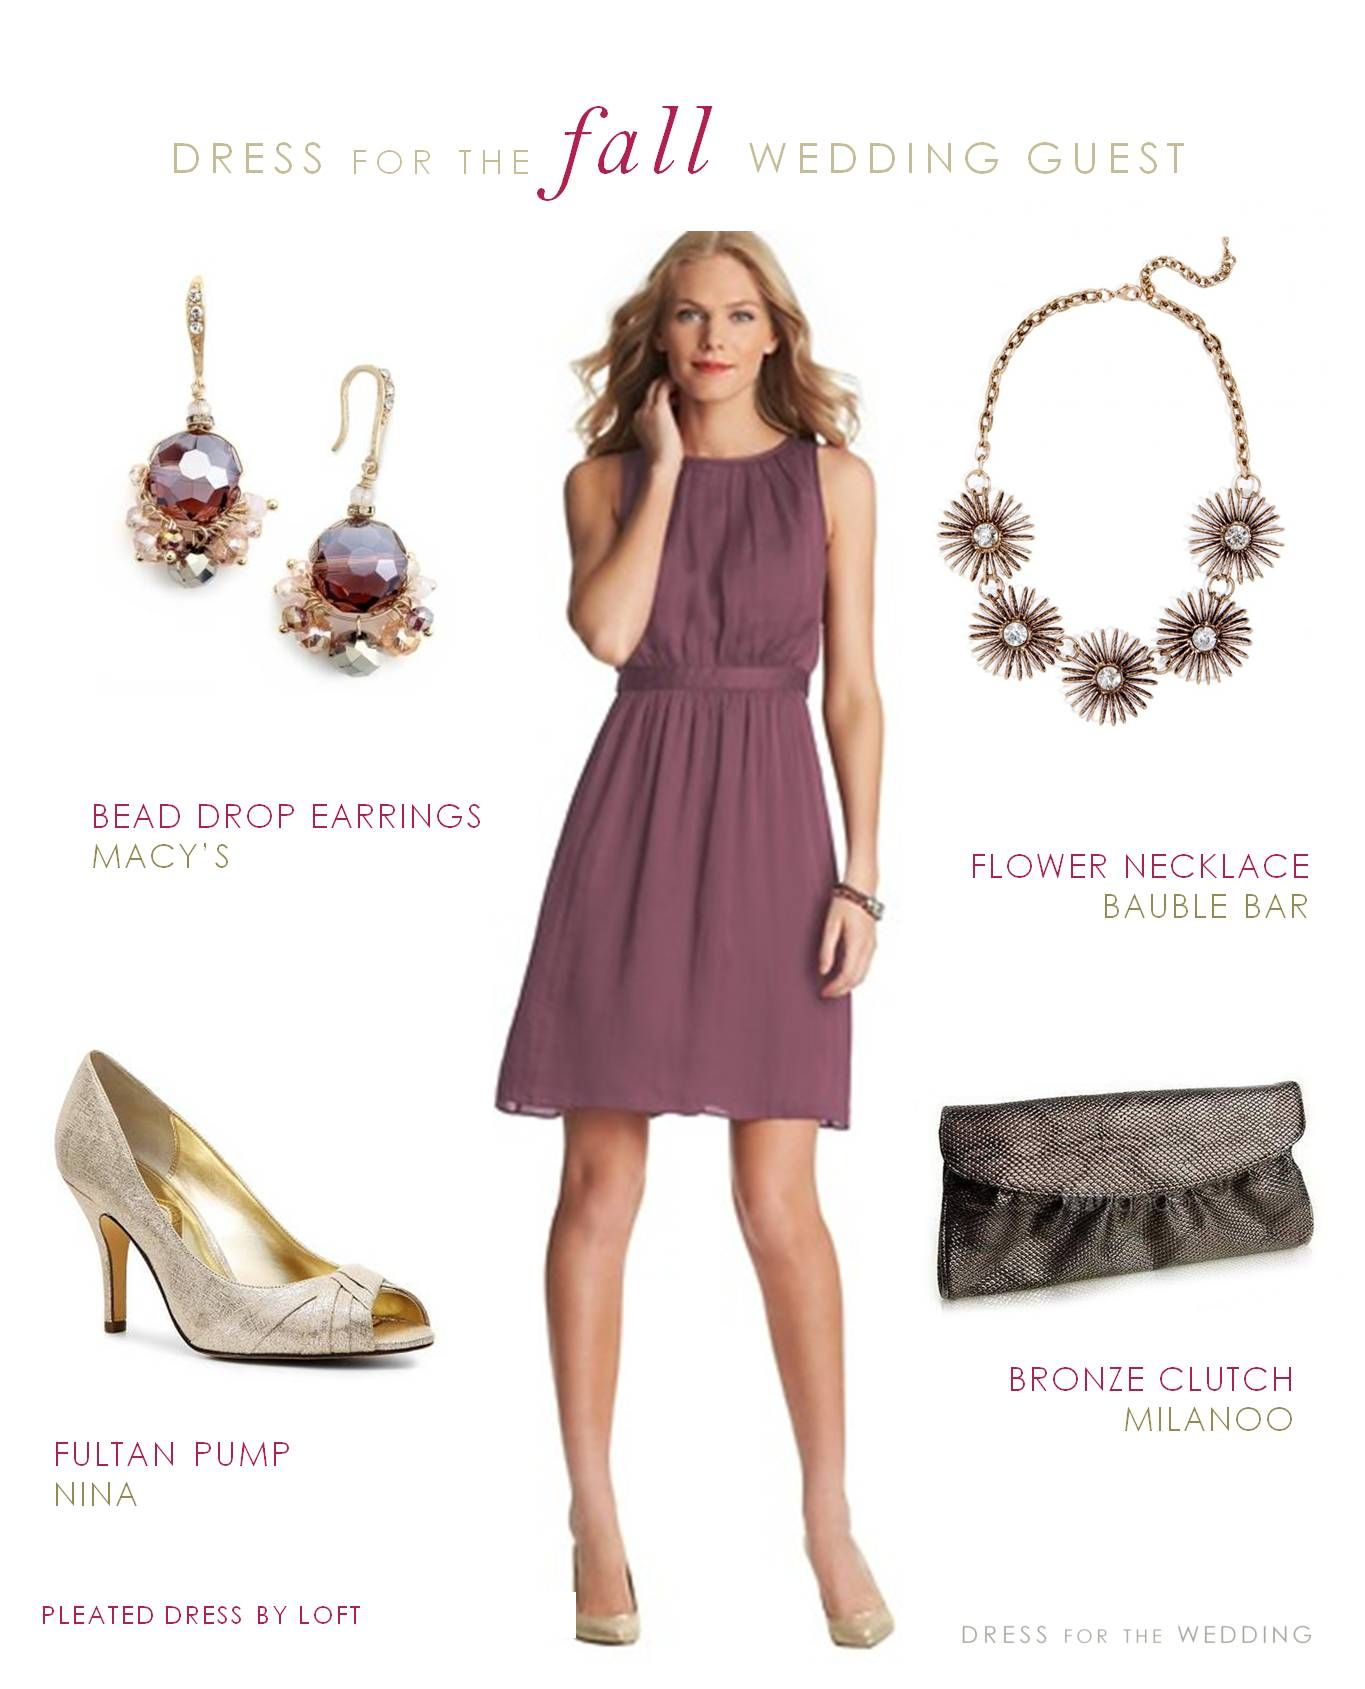 A Dressy Casual Dress For September Wedding Guest Pretty Mauve With Accessories Ideas To Wear Fall Weddings